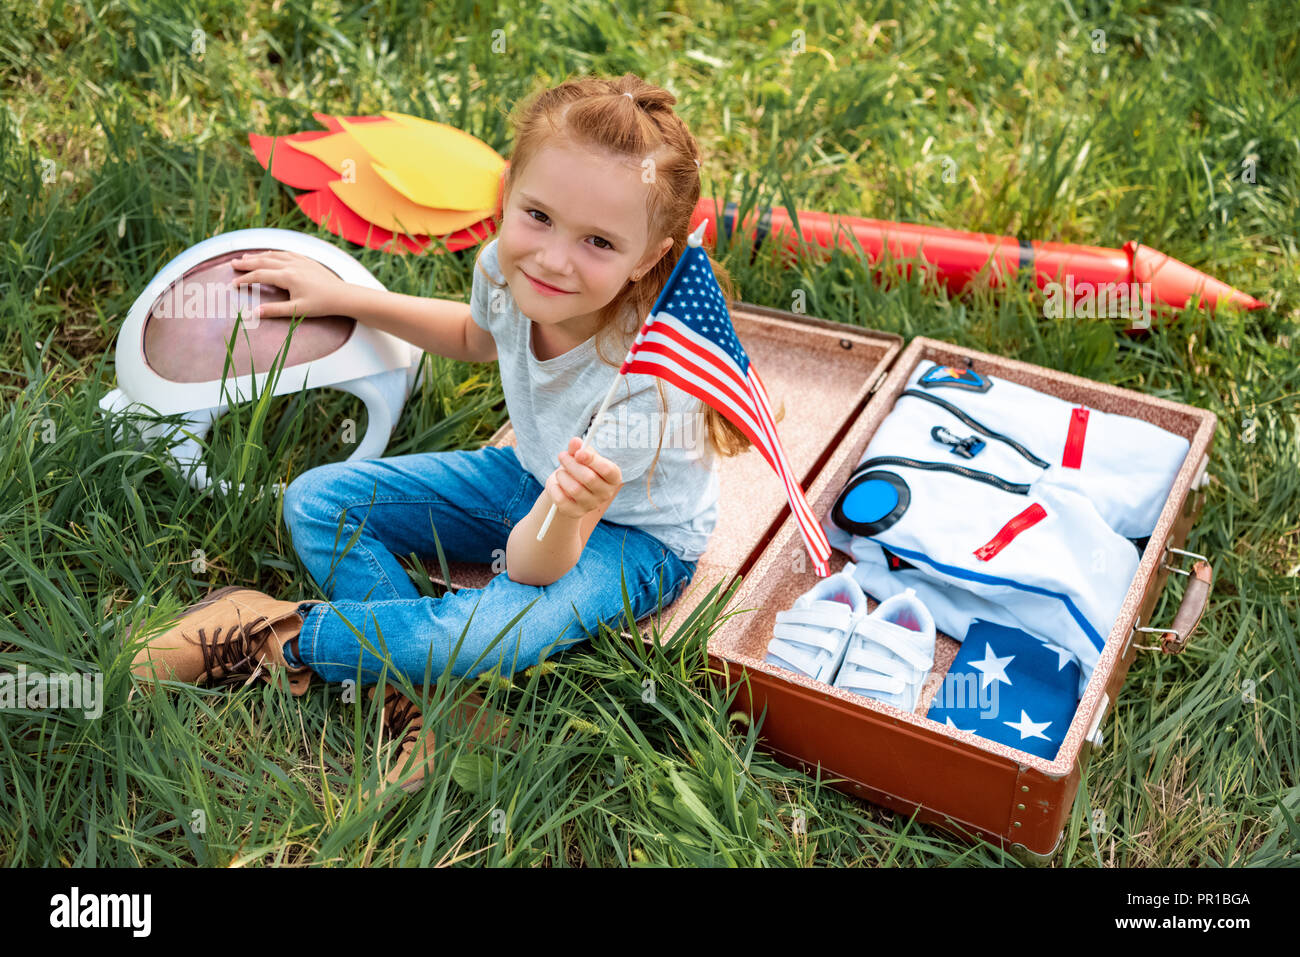 smiling kid with american flagpole in hand sitting near suitcase with astronaut costume and rocket on green grass - Stock Image